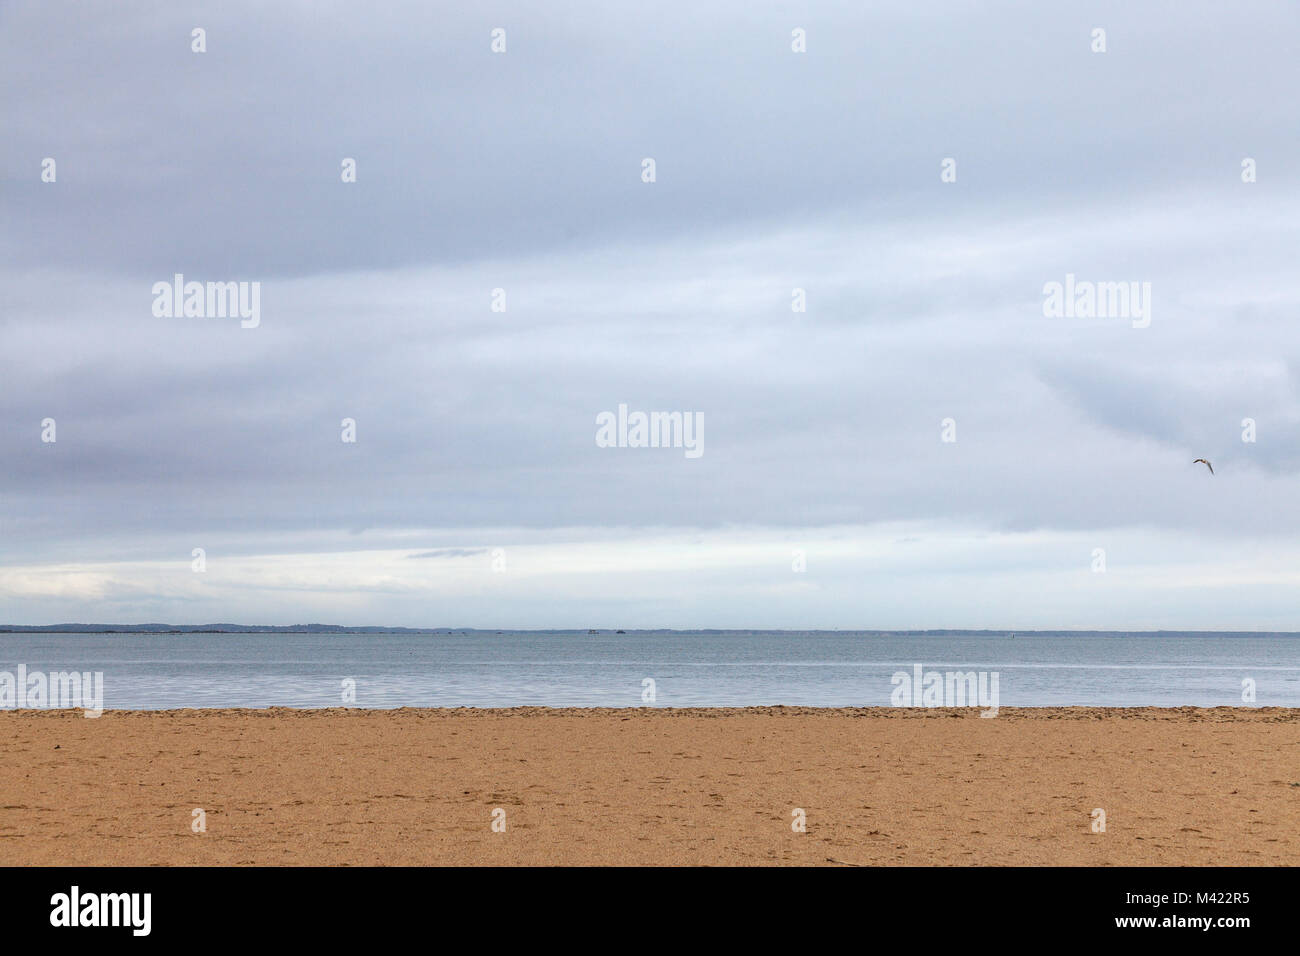 Atlantic ocean in Gujan Mestras, Bassin d'Arcachon, France, during a storm on a cloudy rainy afternoon. This - Stock Image